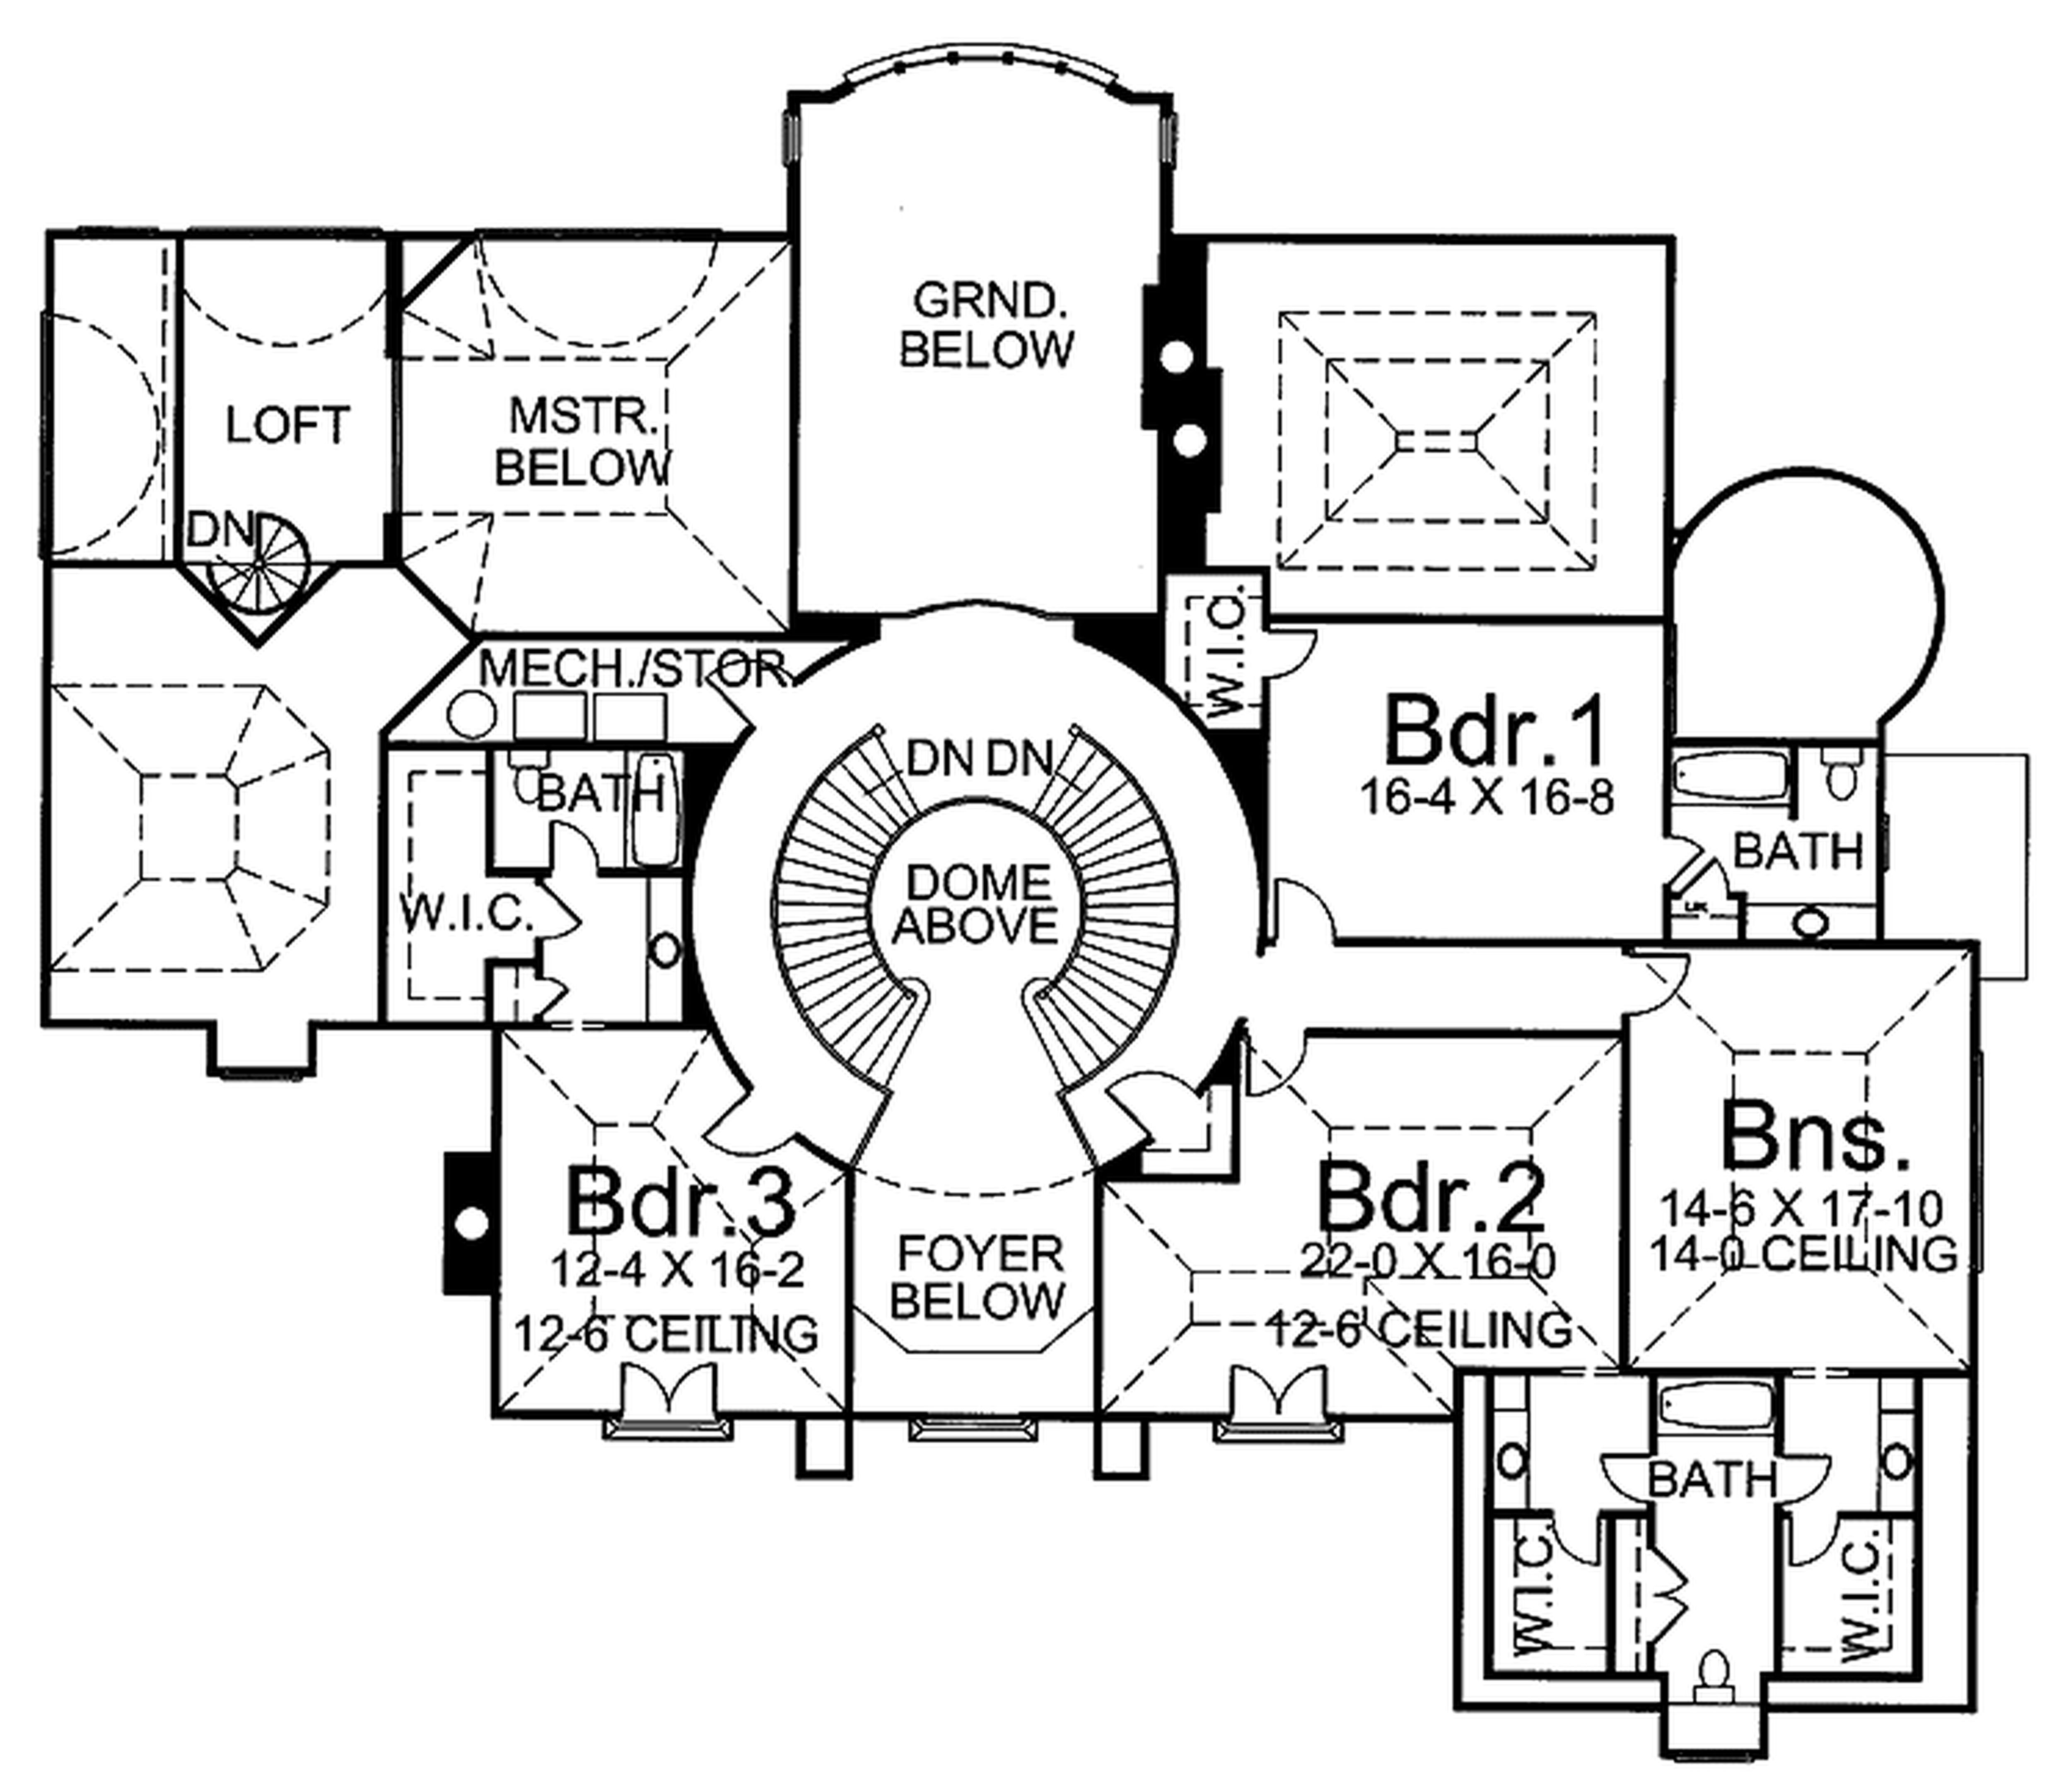 Architectural Drawing Symbols Floor Plan at GetDrawings.com | Free ...